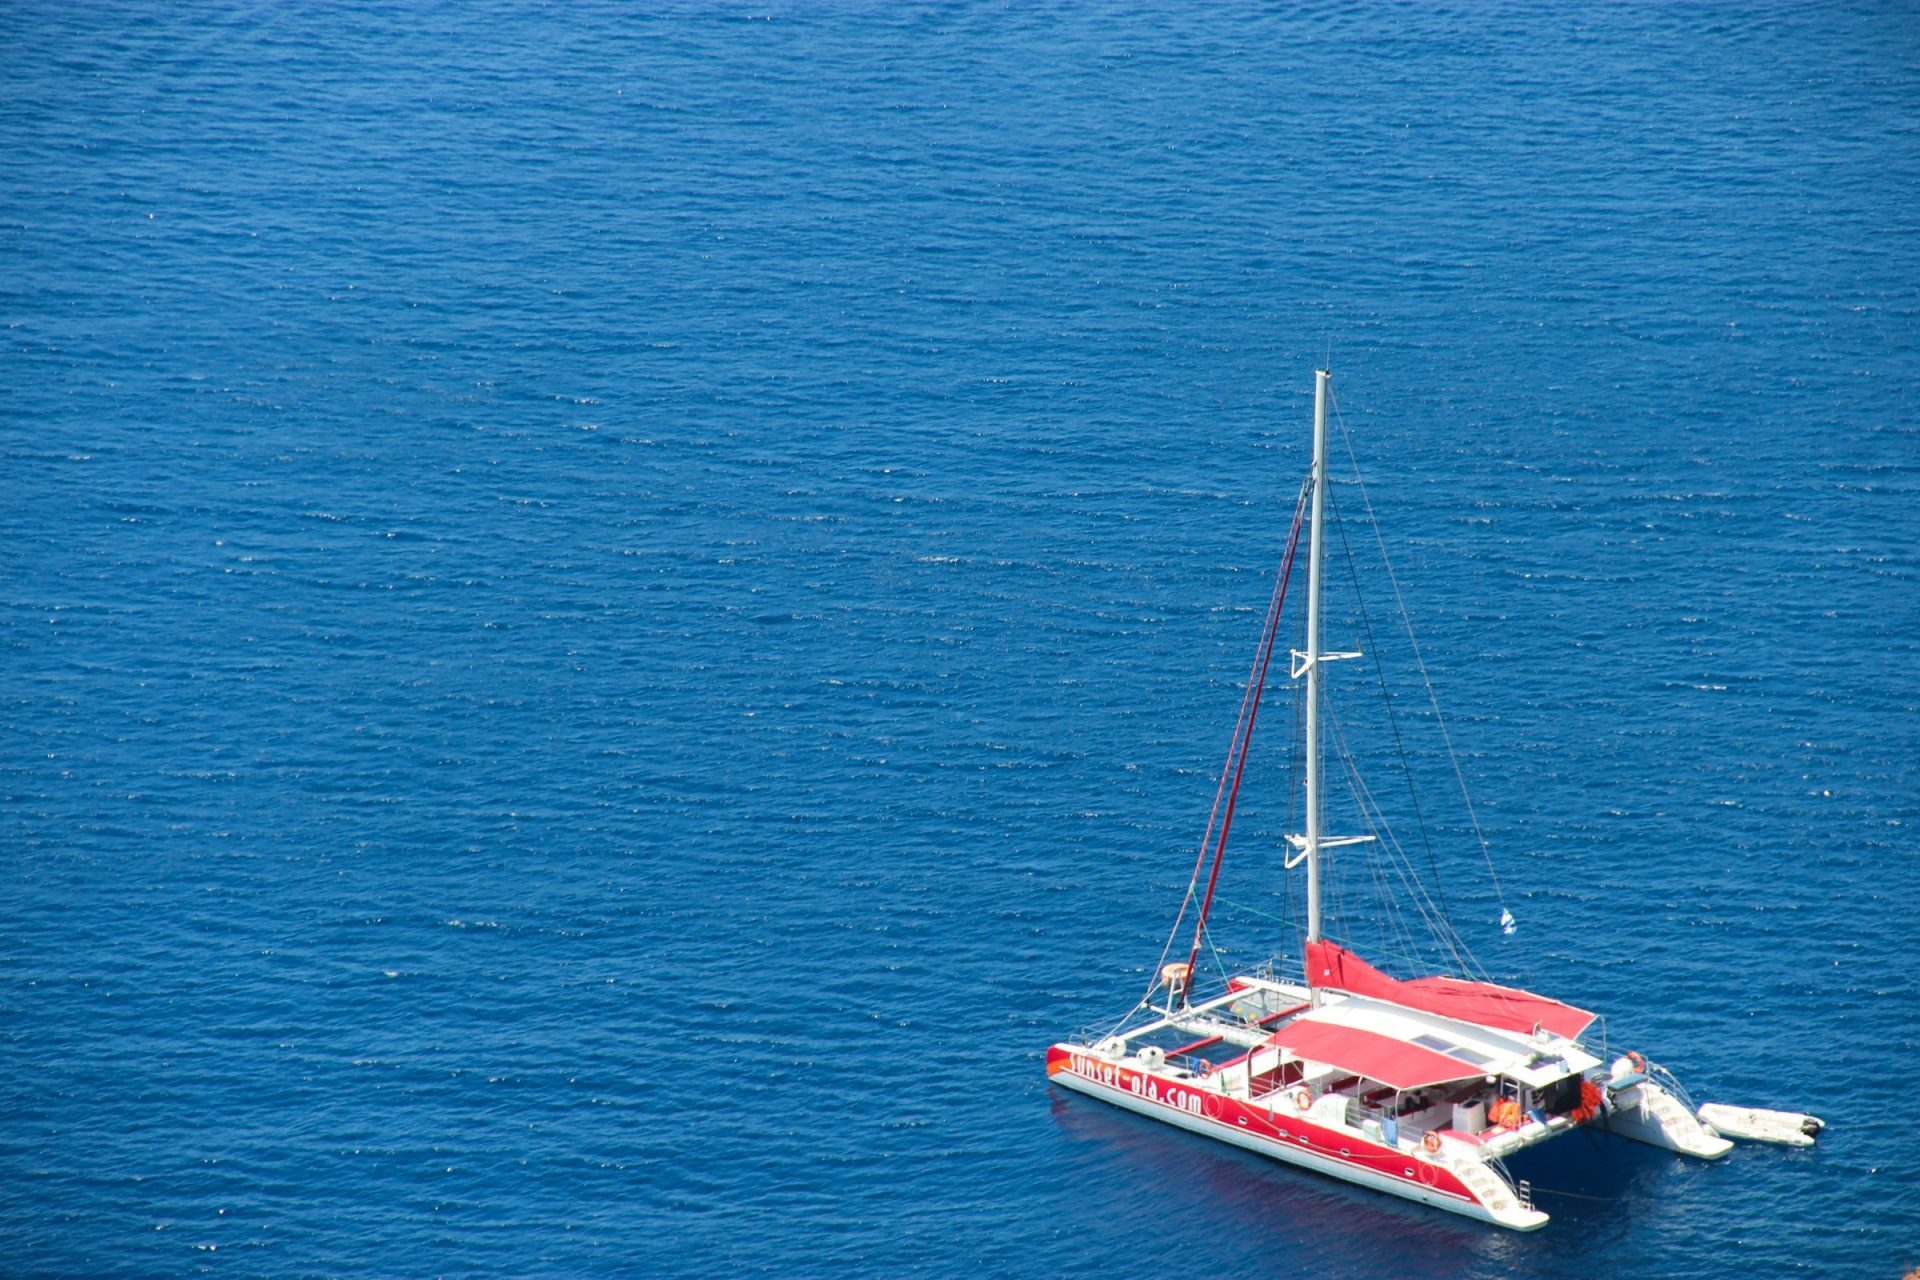 Catamaran Sailboat On Water